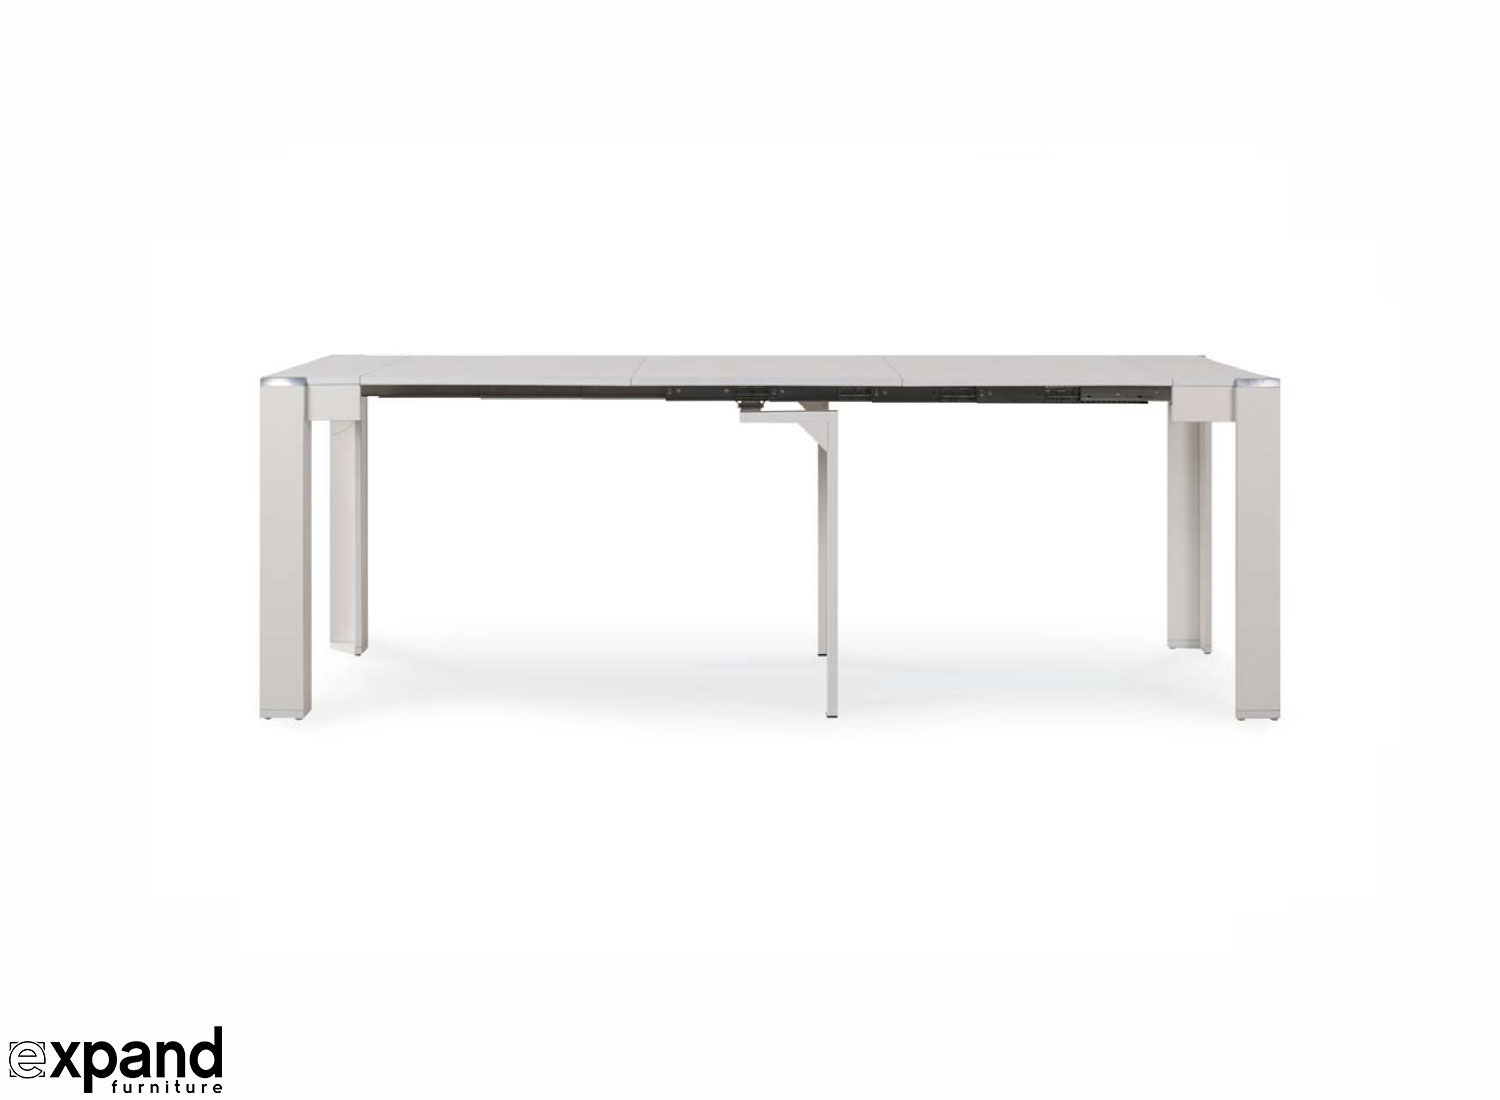 Extending Coffee Table Expanda Console With Contained Extensions Expand Furniture